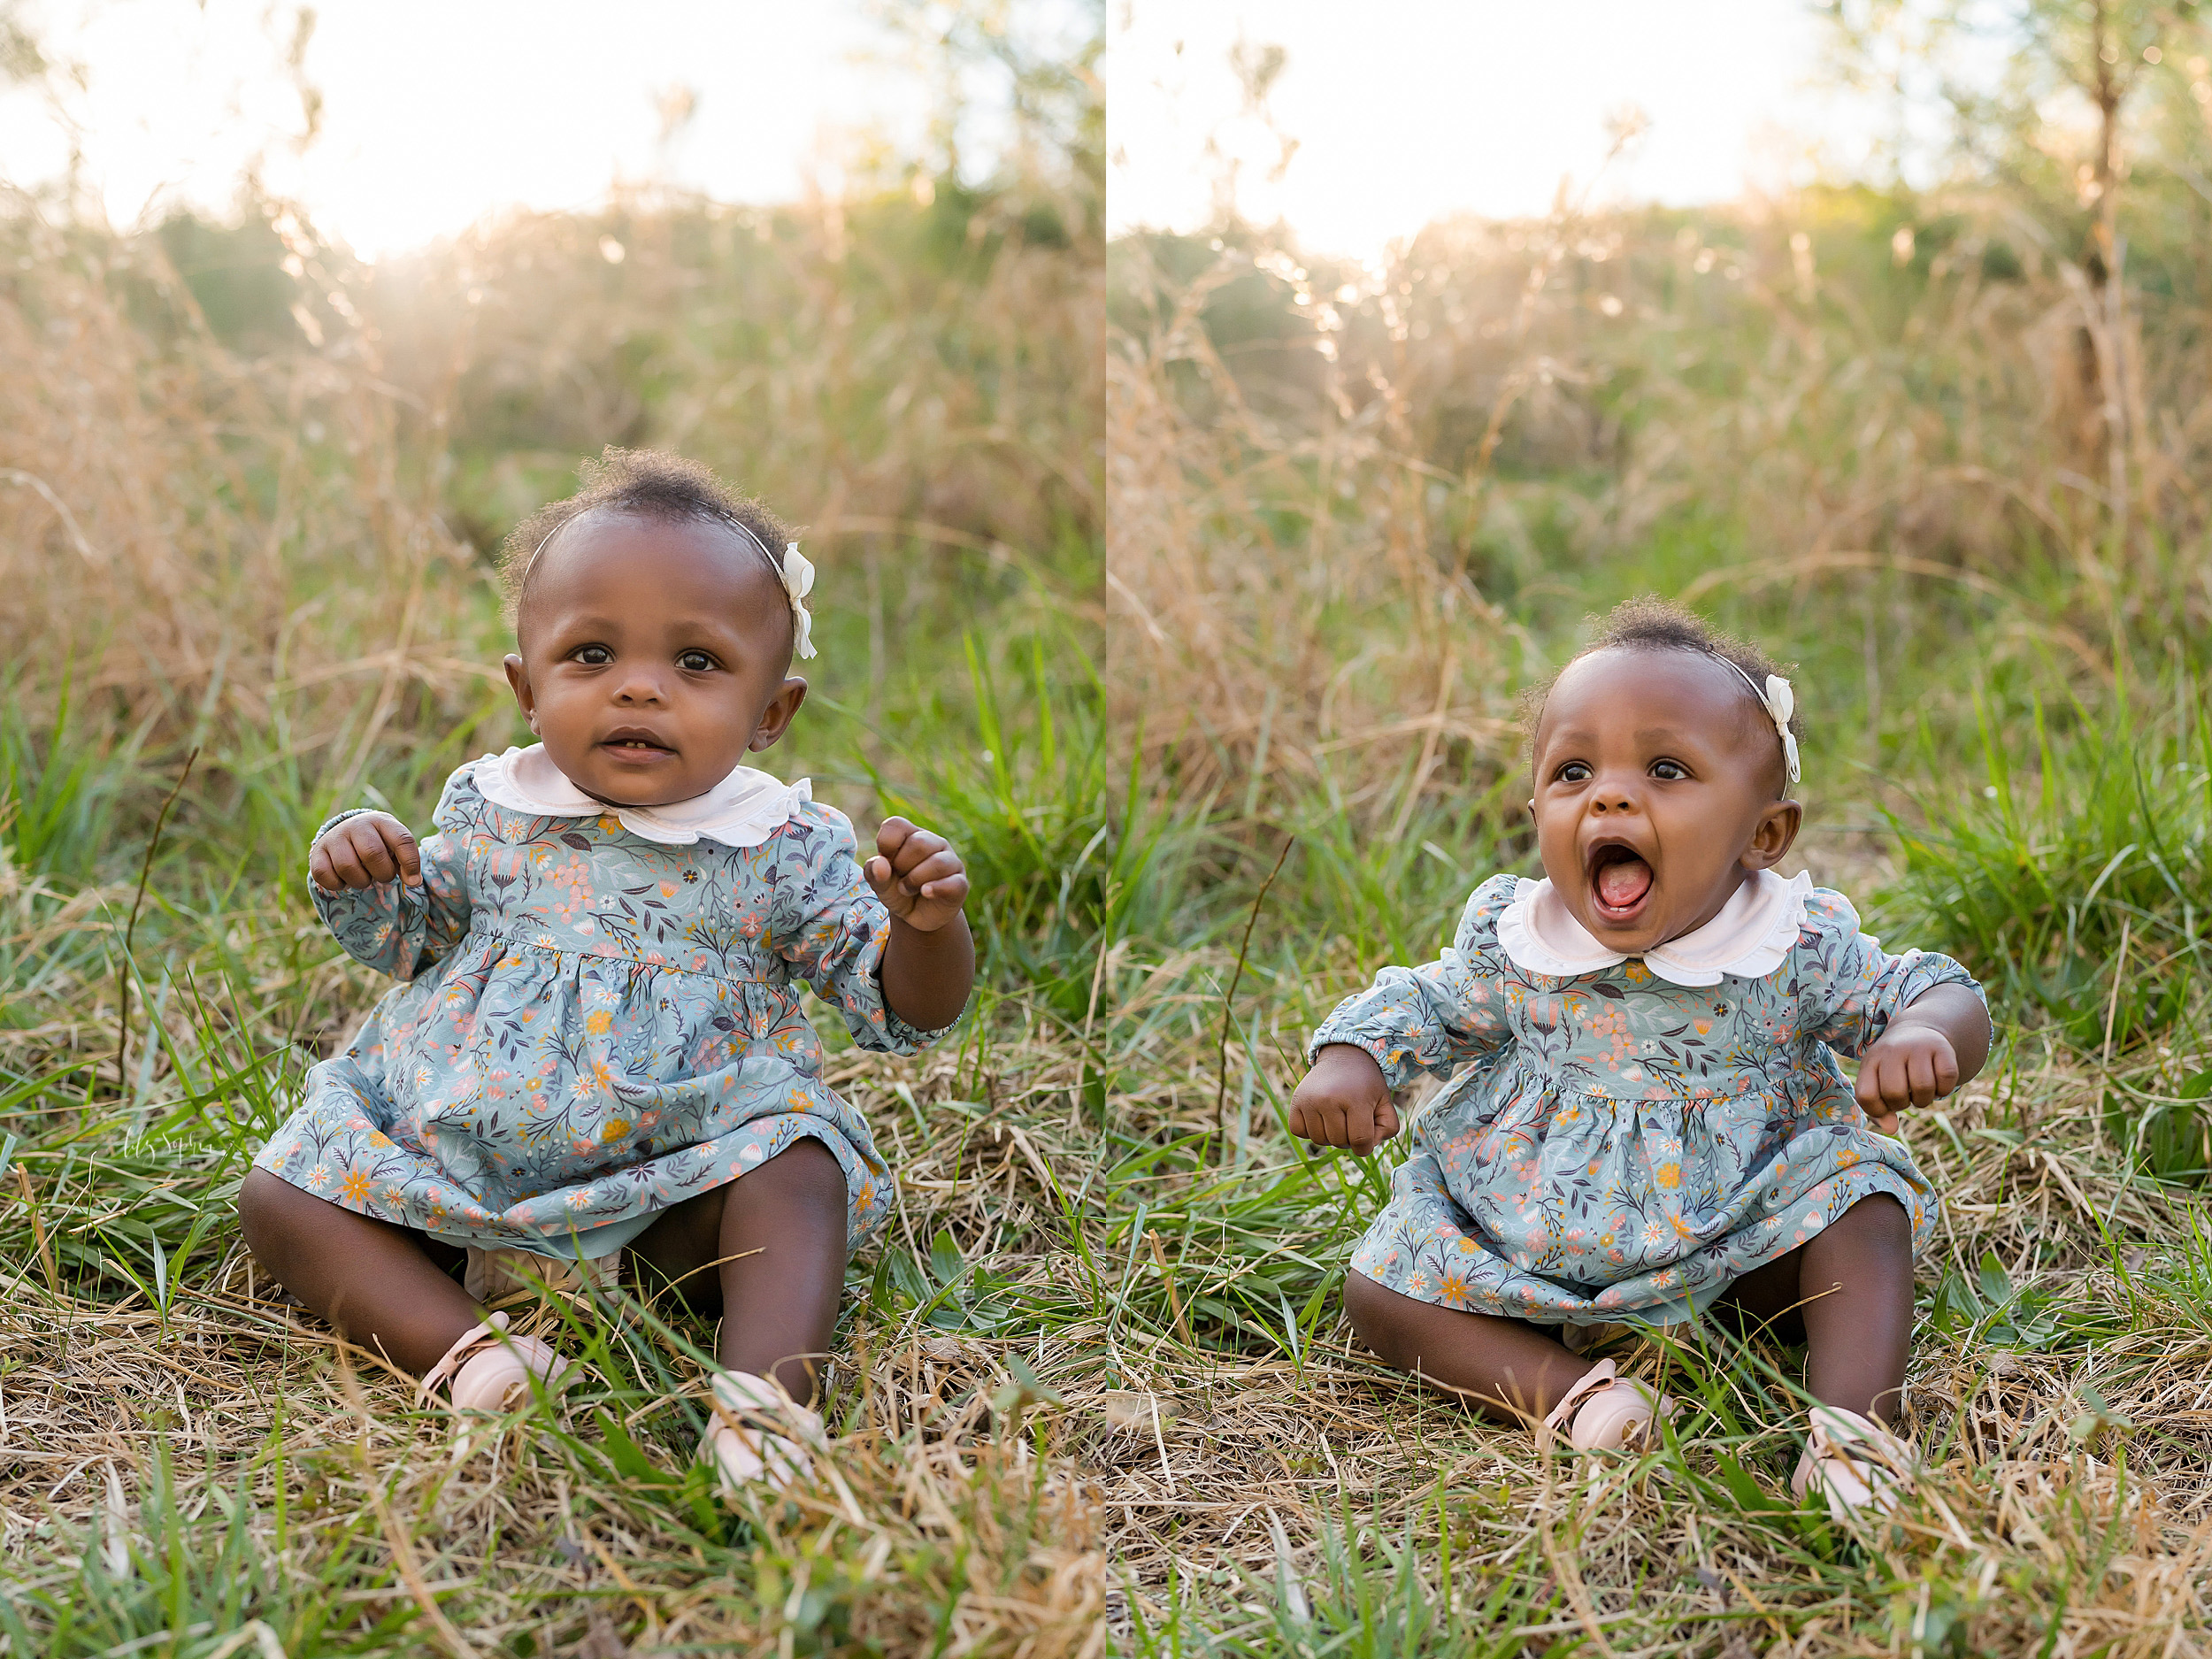 atlanta-cumming-milton-sandy-springs-buckhead-virginia-highlands-west-end-decatur-lily-sophia-photography-outdoor-sunset-field-first-birthday-cake-pop-smash-family-pictures_1283.jpg